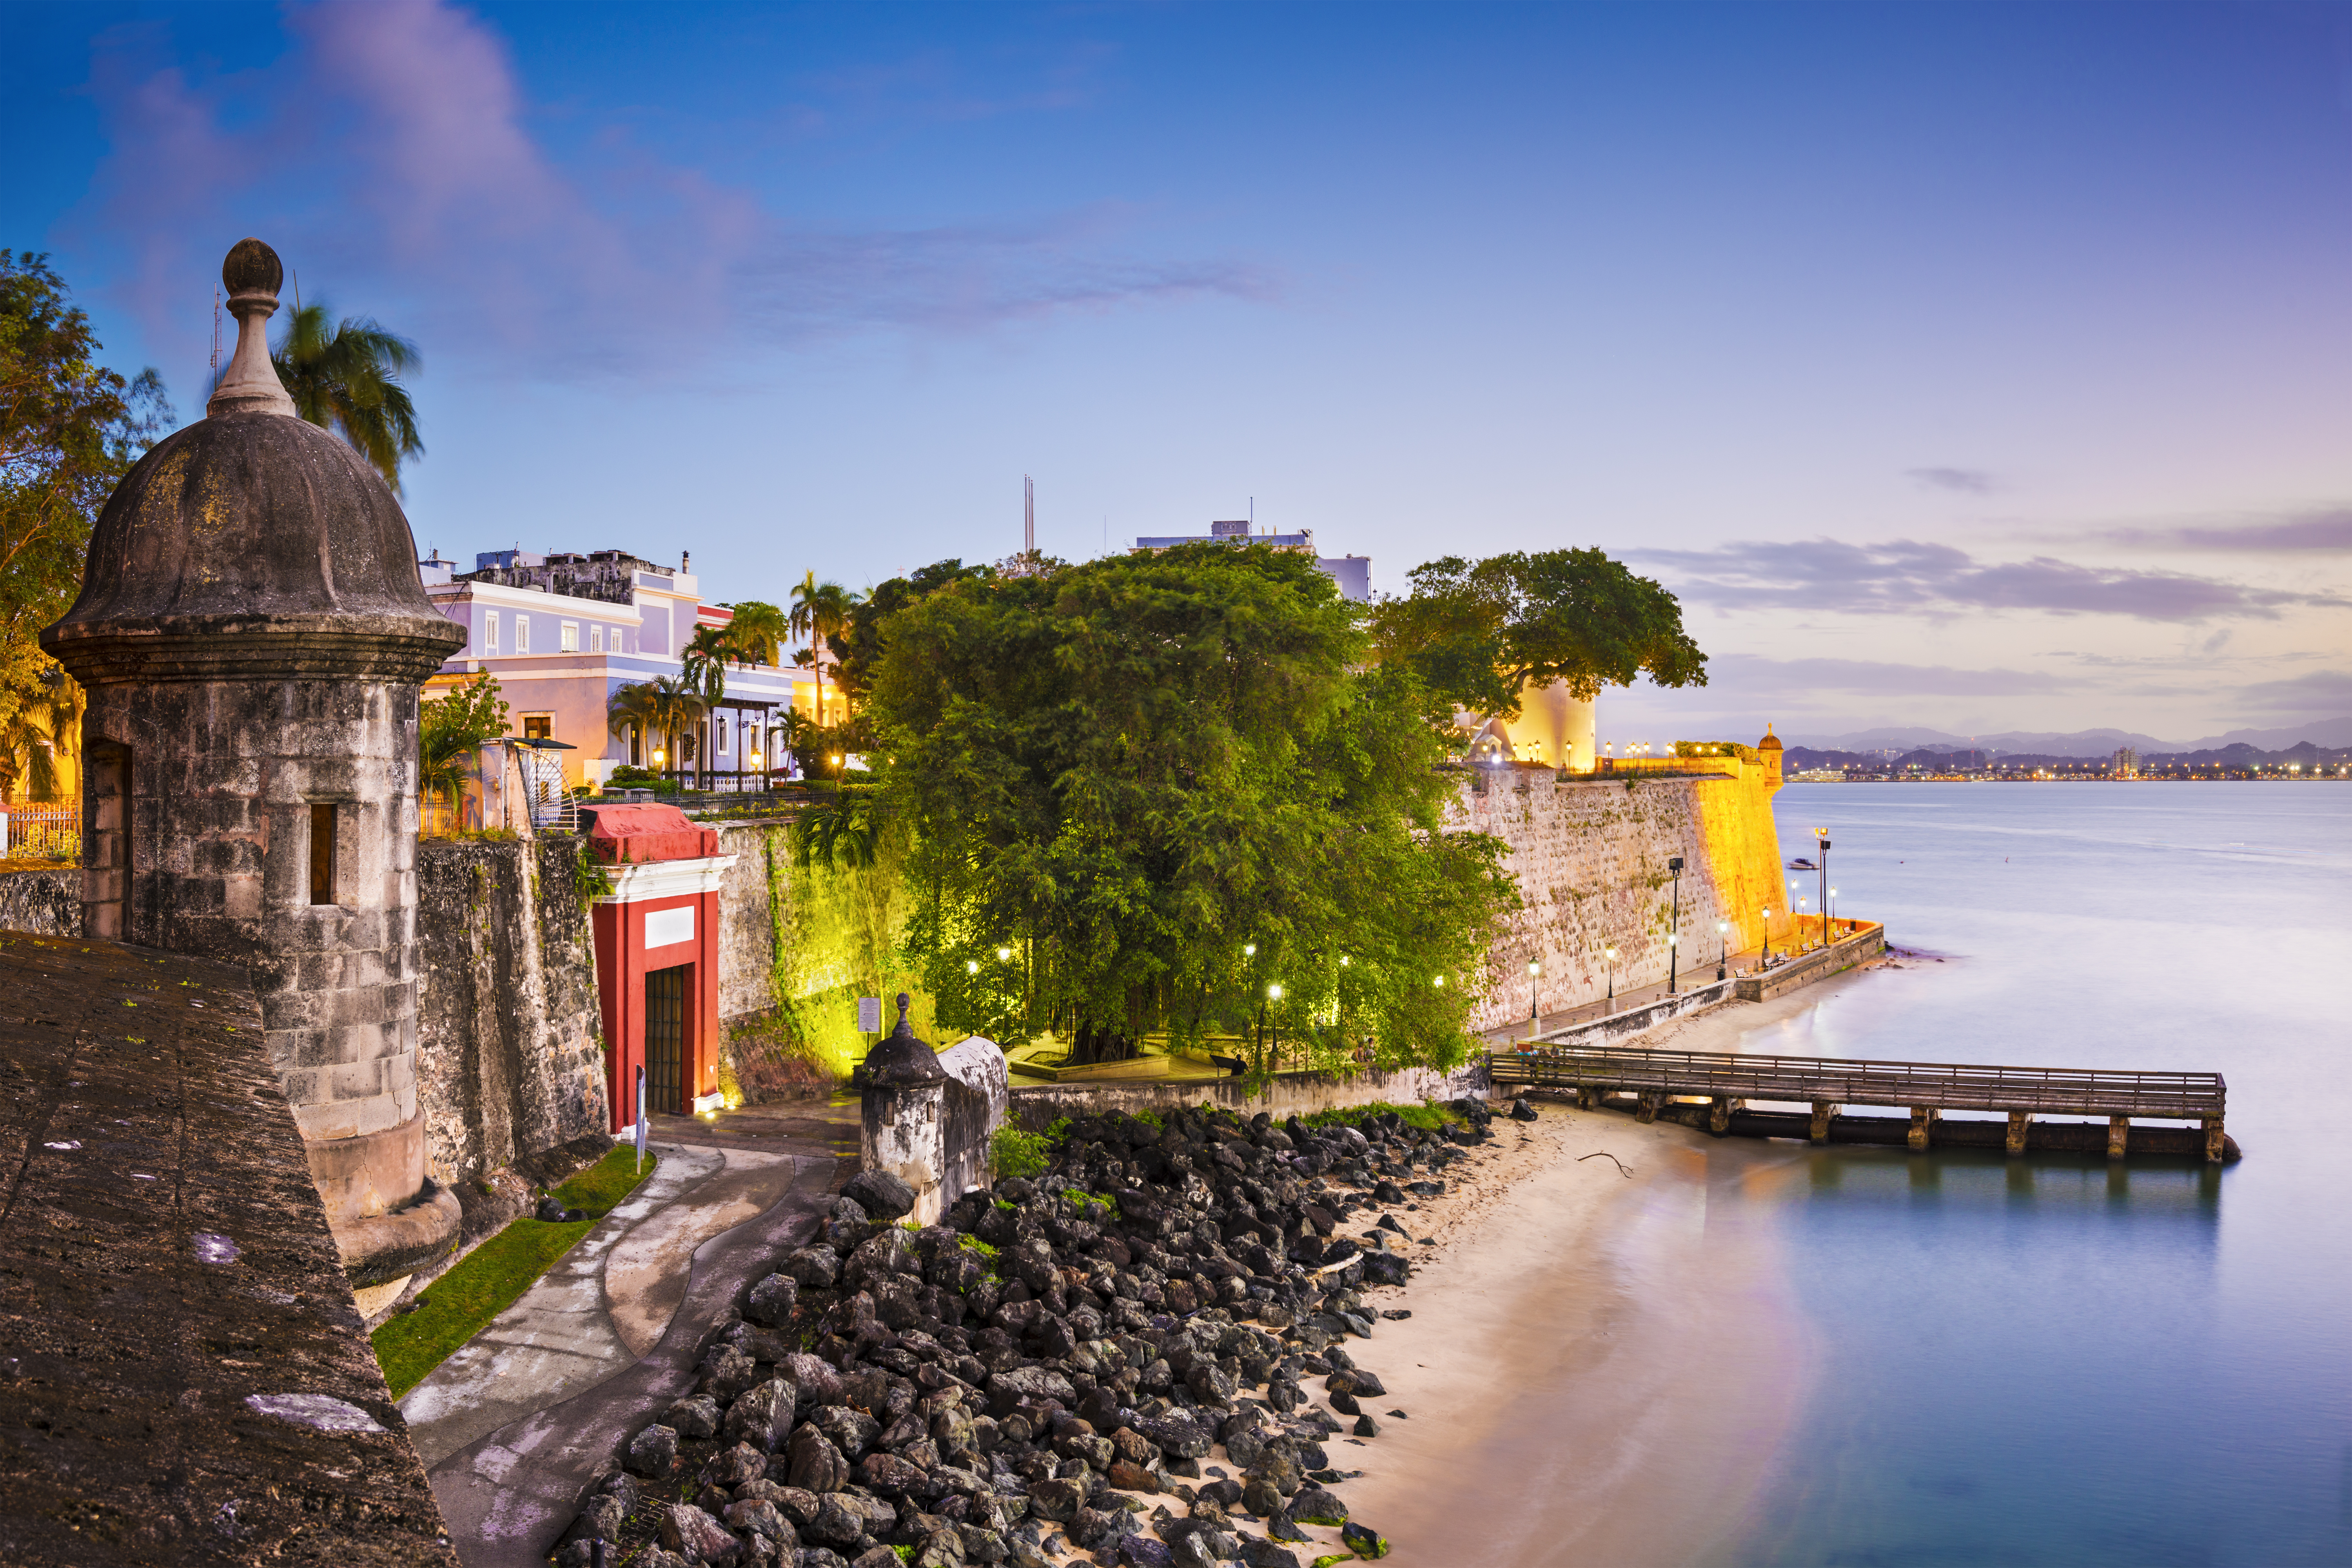 Equity free startup accelerator in San Juan, Puerto Rico